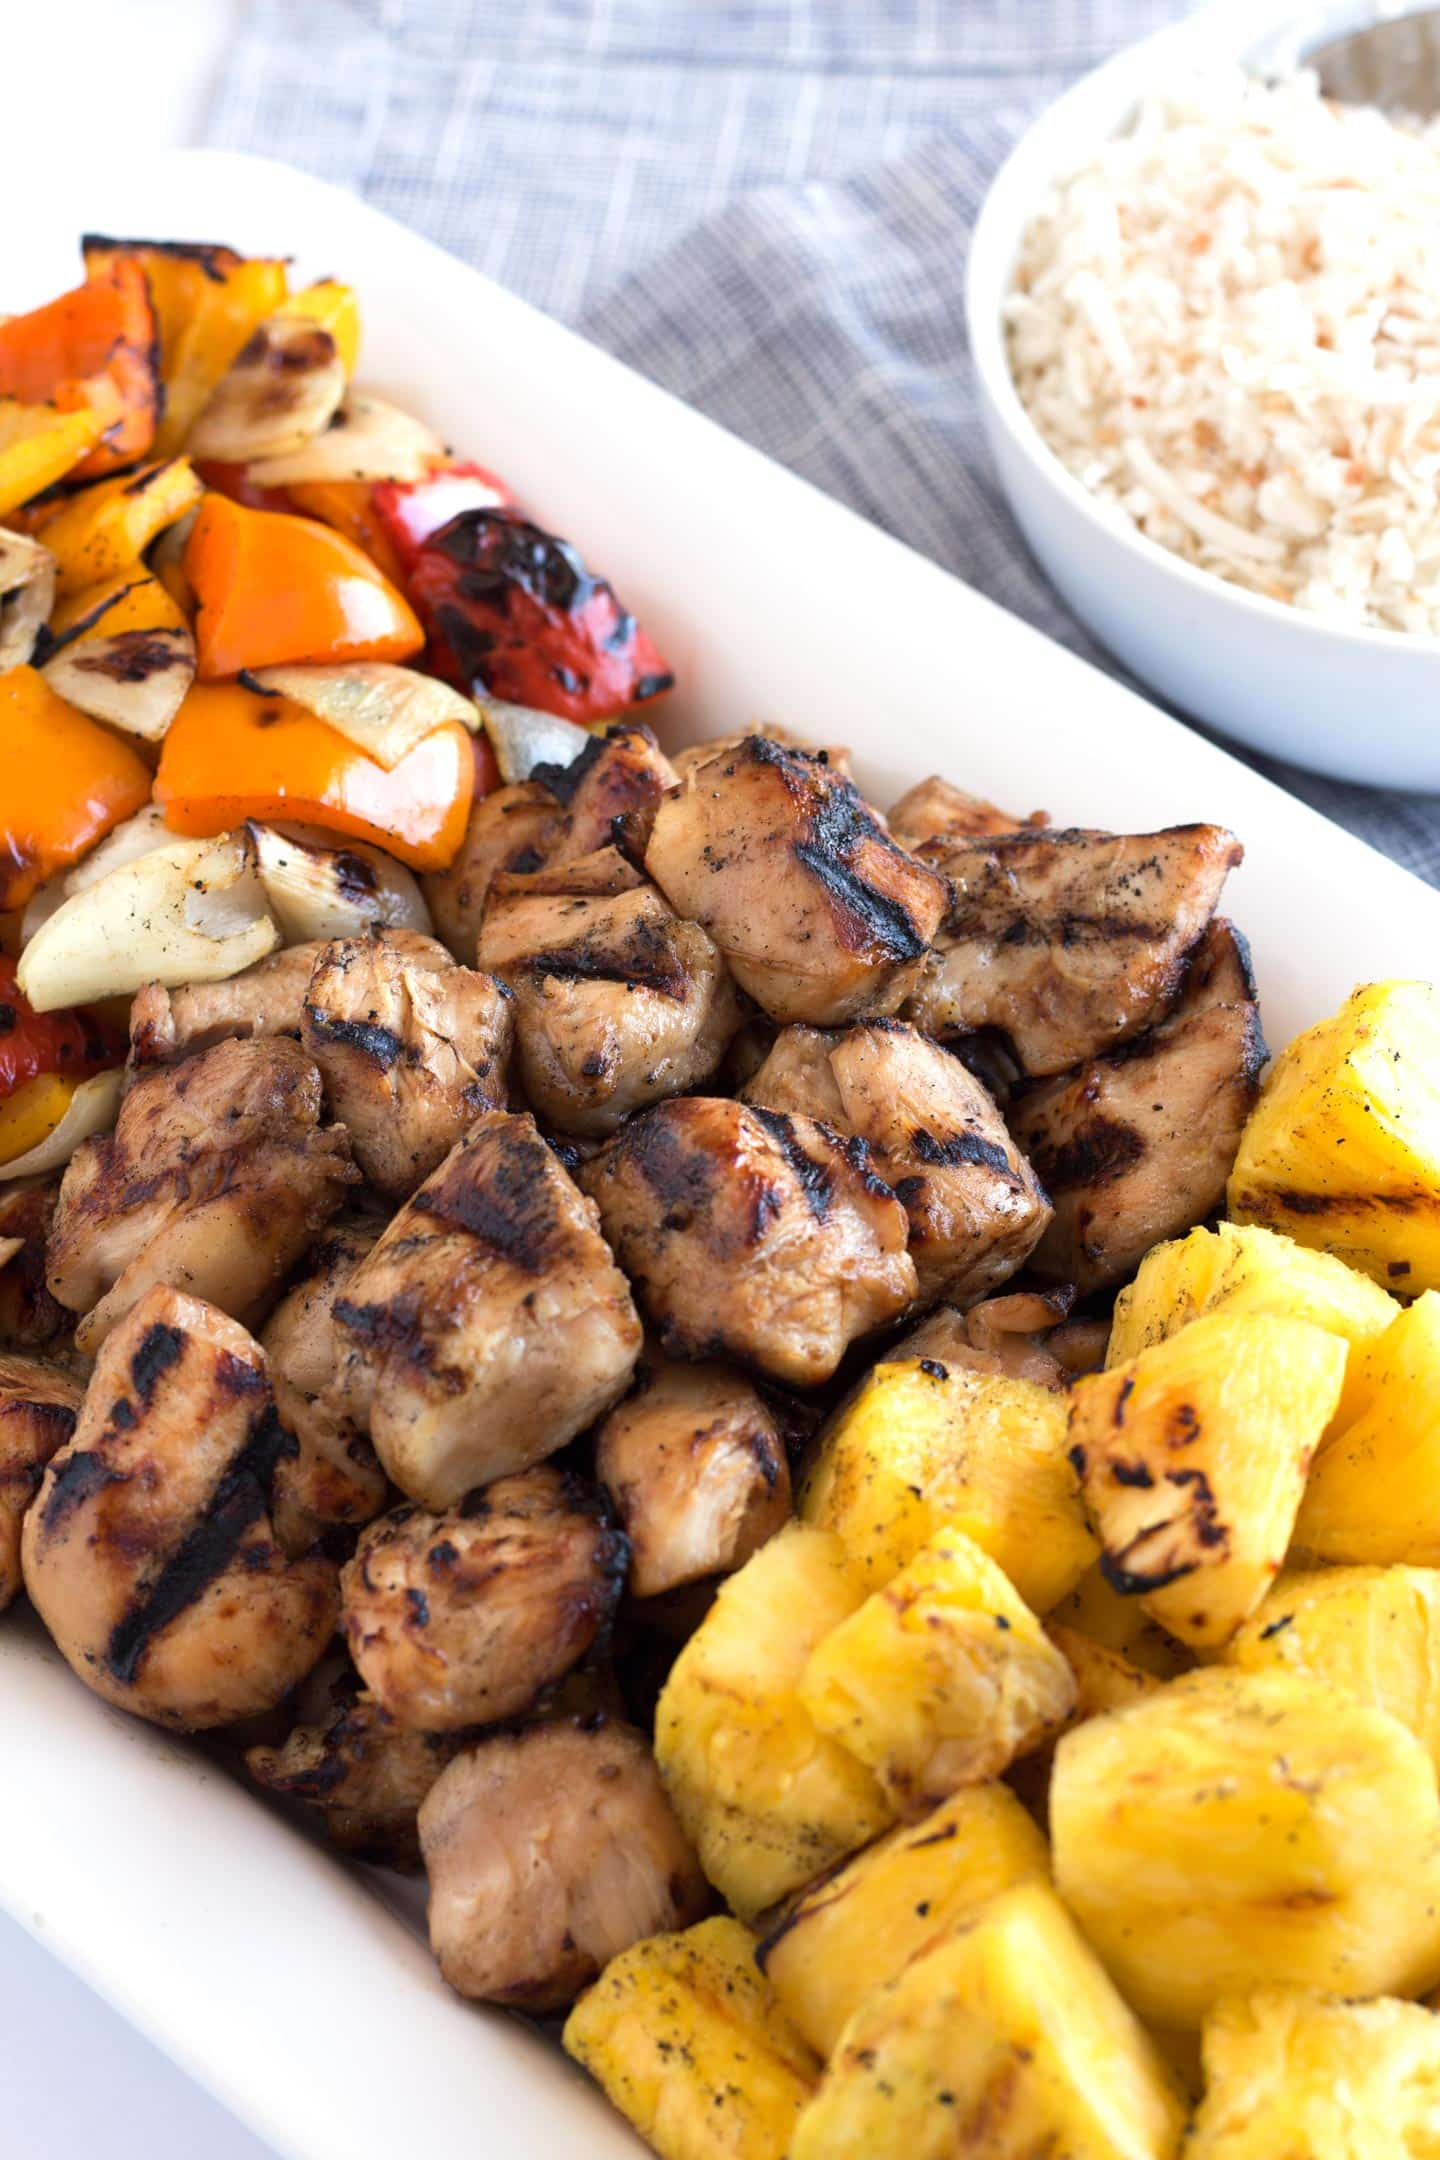 White platter with grilled honey chicken, vegetables, and pineapple.